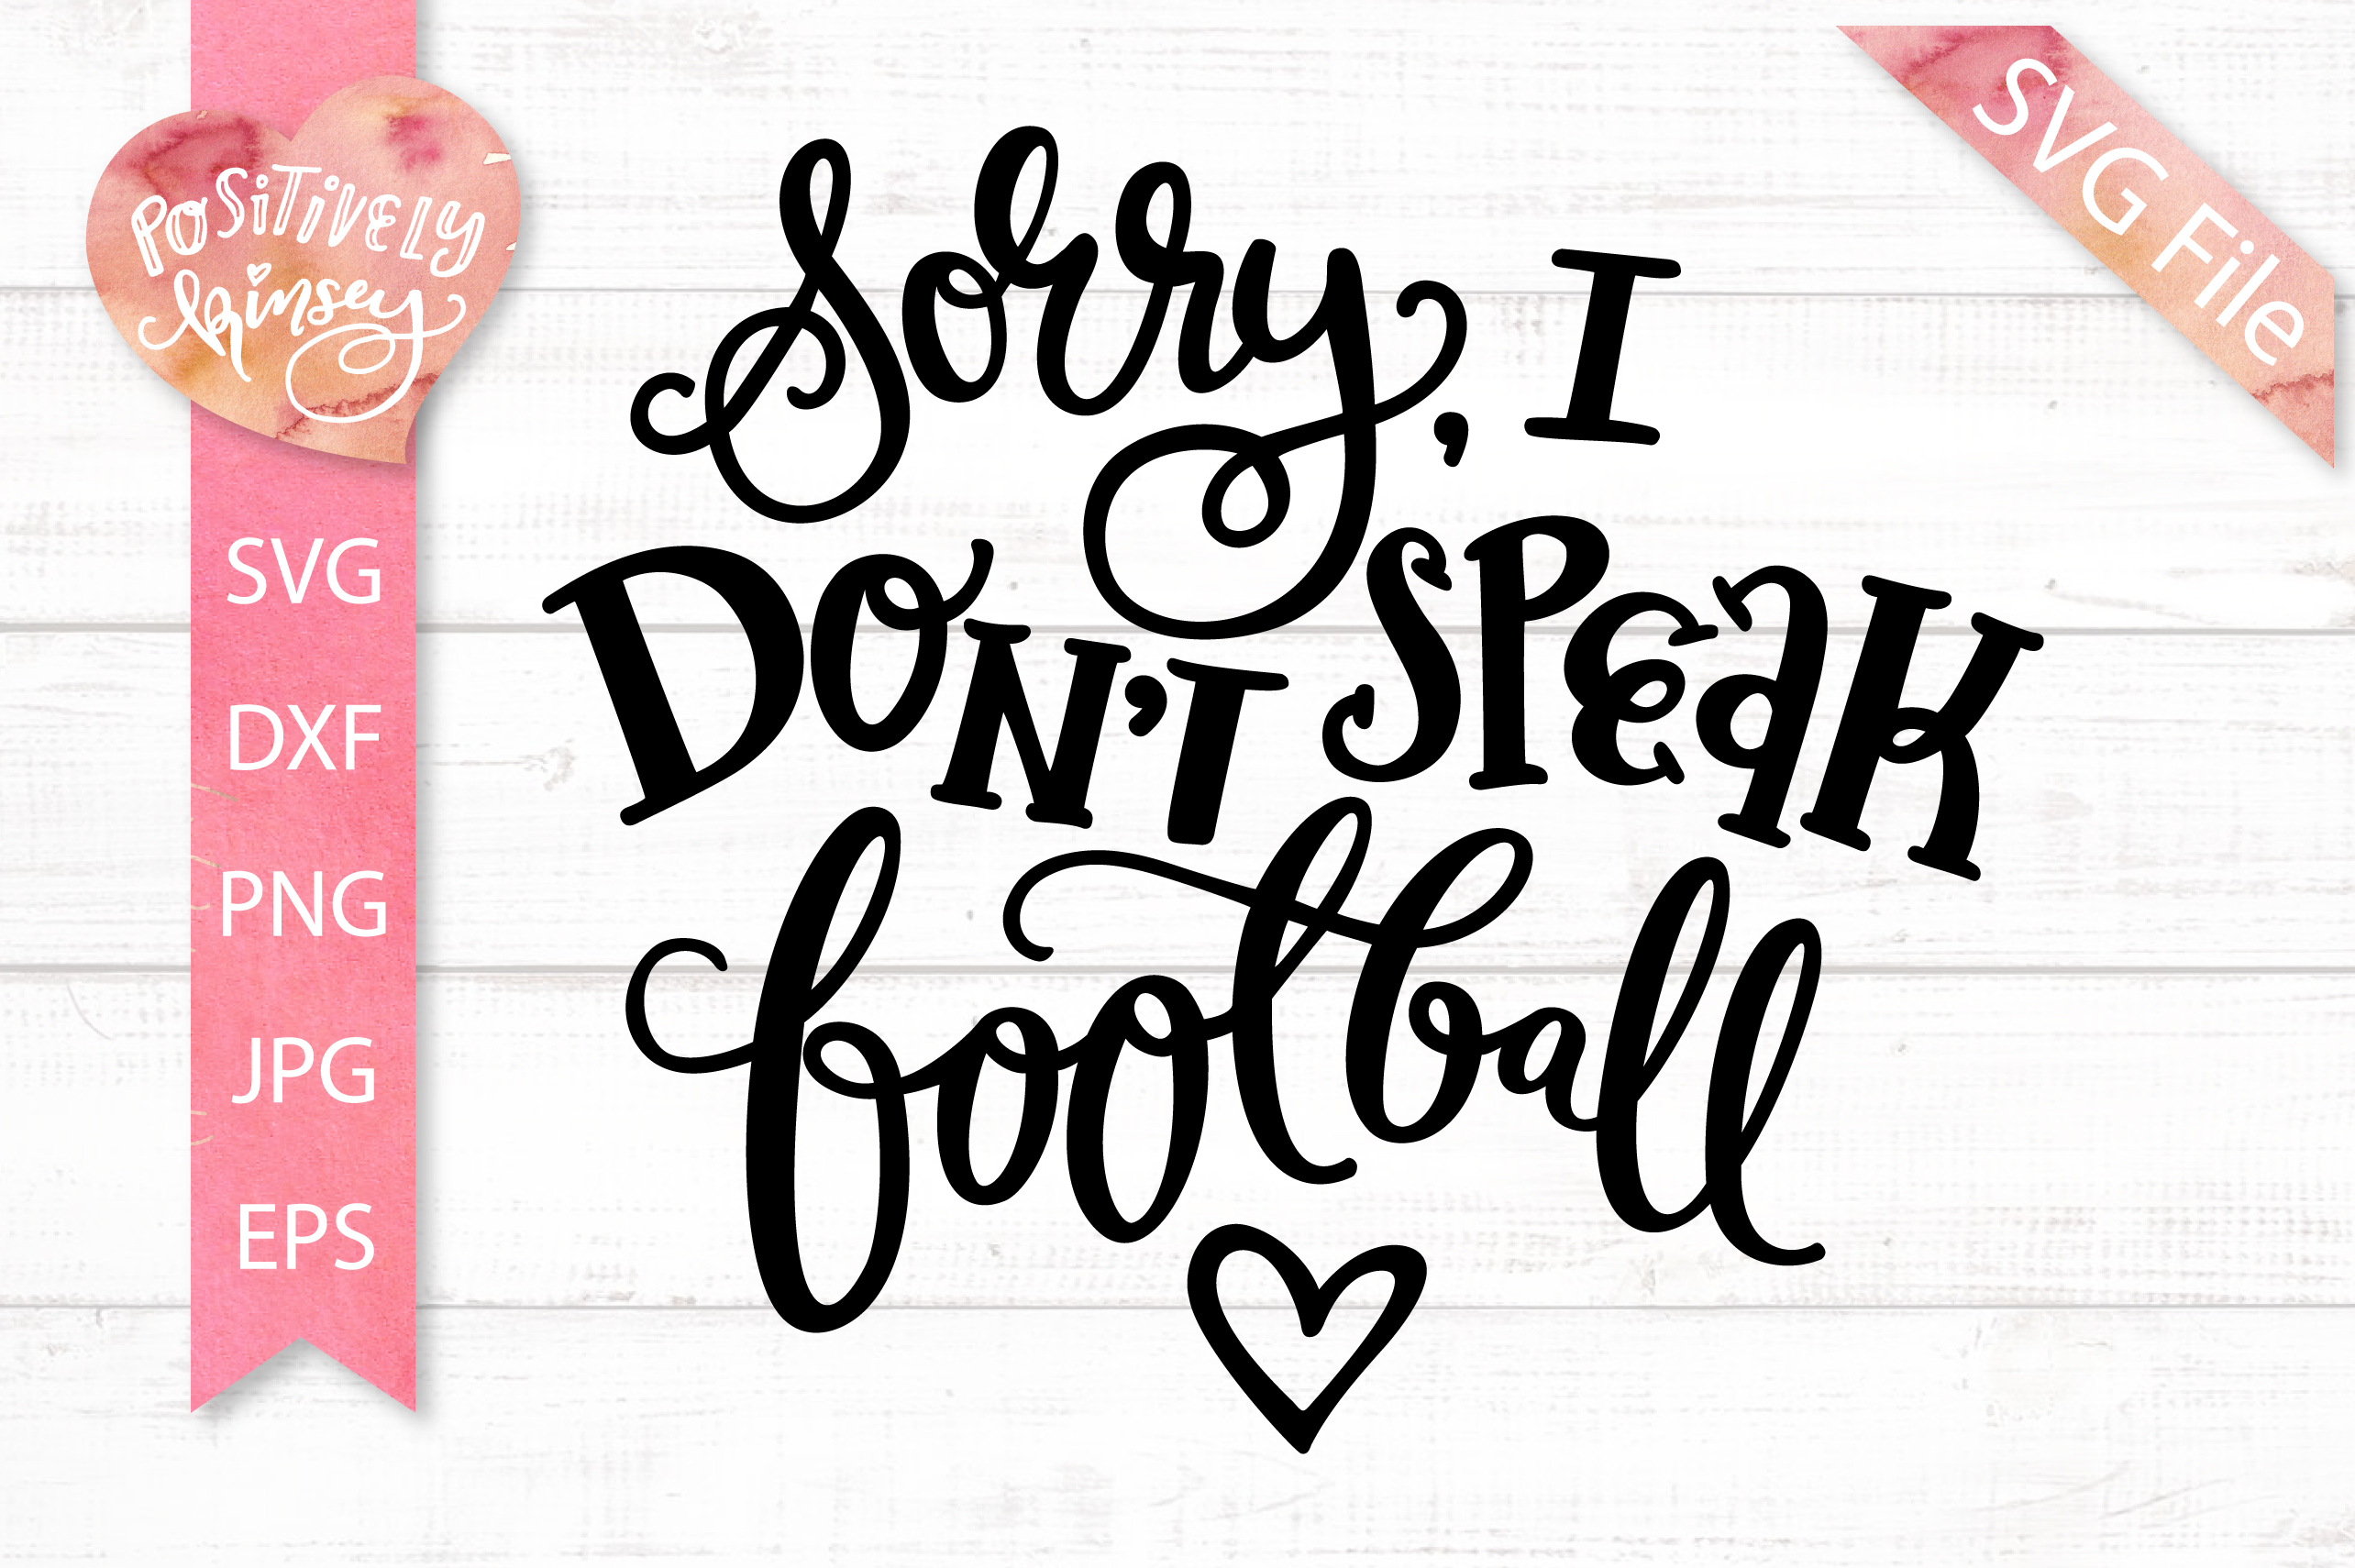 Introvert SVG, Sorry I Don't Speak Football SVG DXF PNG EPS example image 2